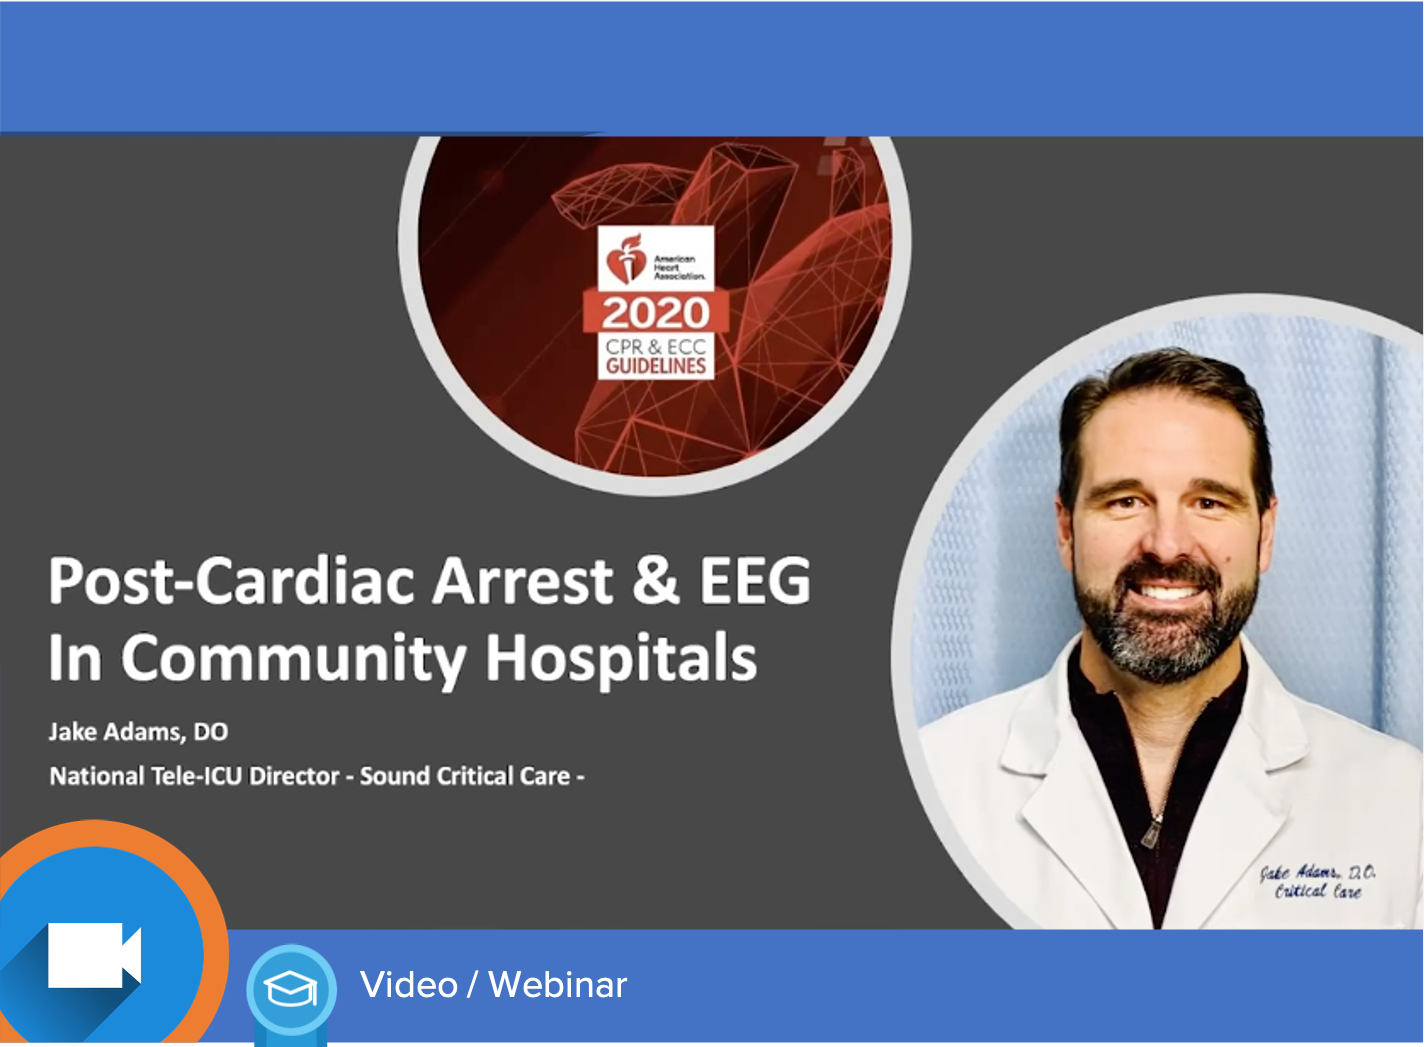 Educational Webinar: AHA Guidelines for Post-Cardiac Arrest and the Class I Recommendation for Prompt EEG